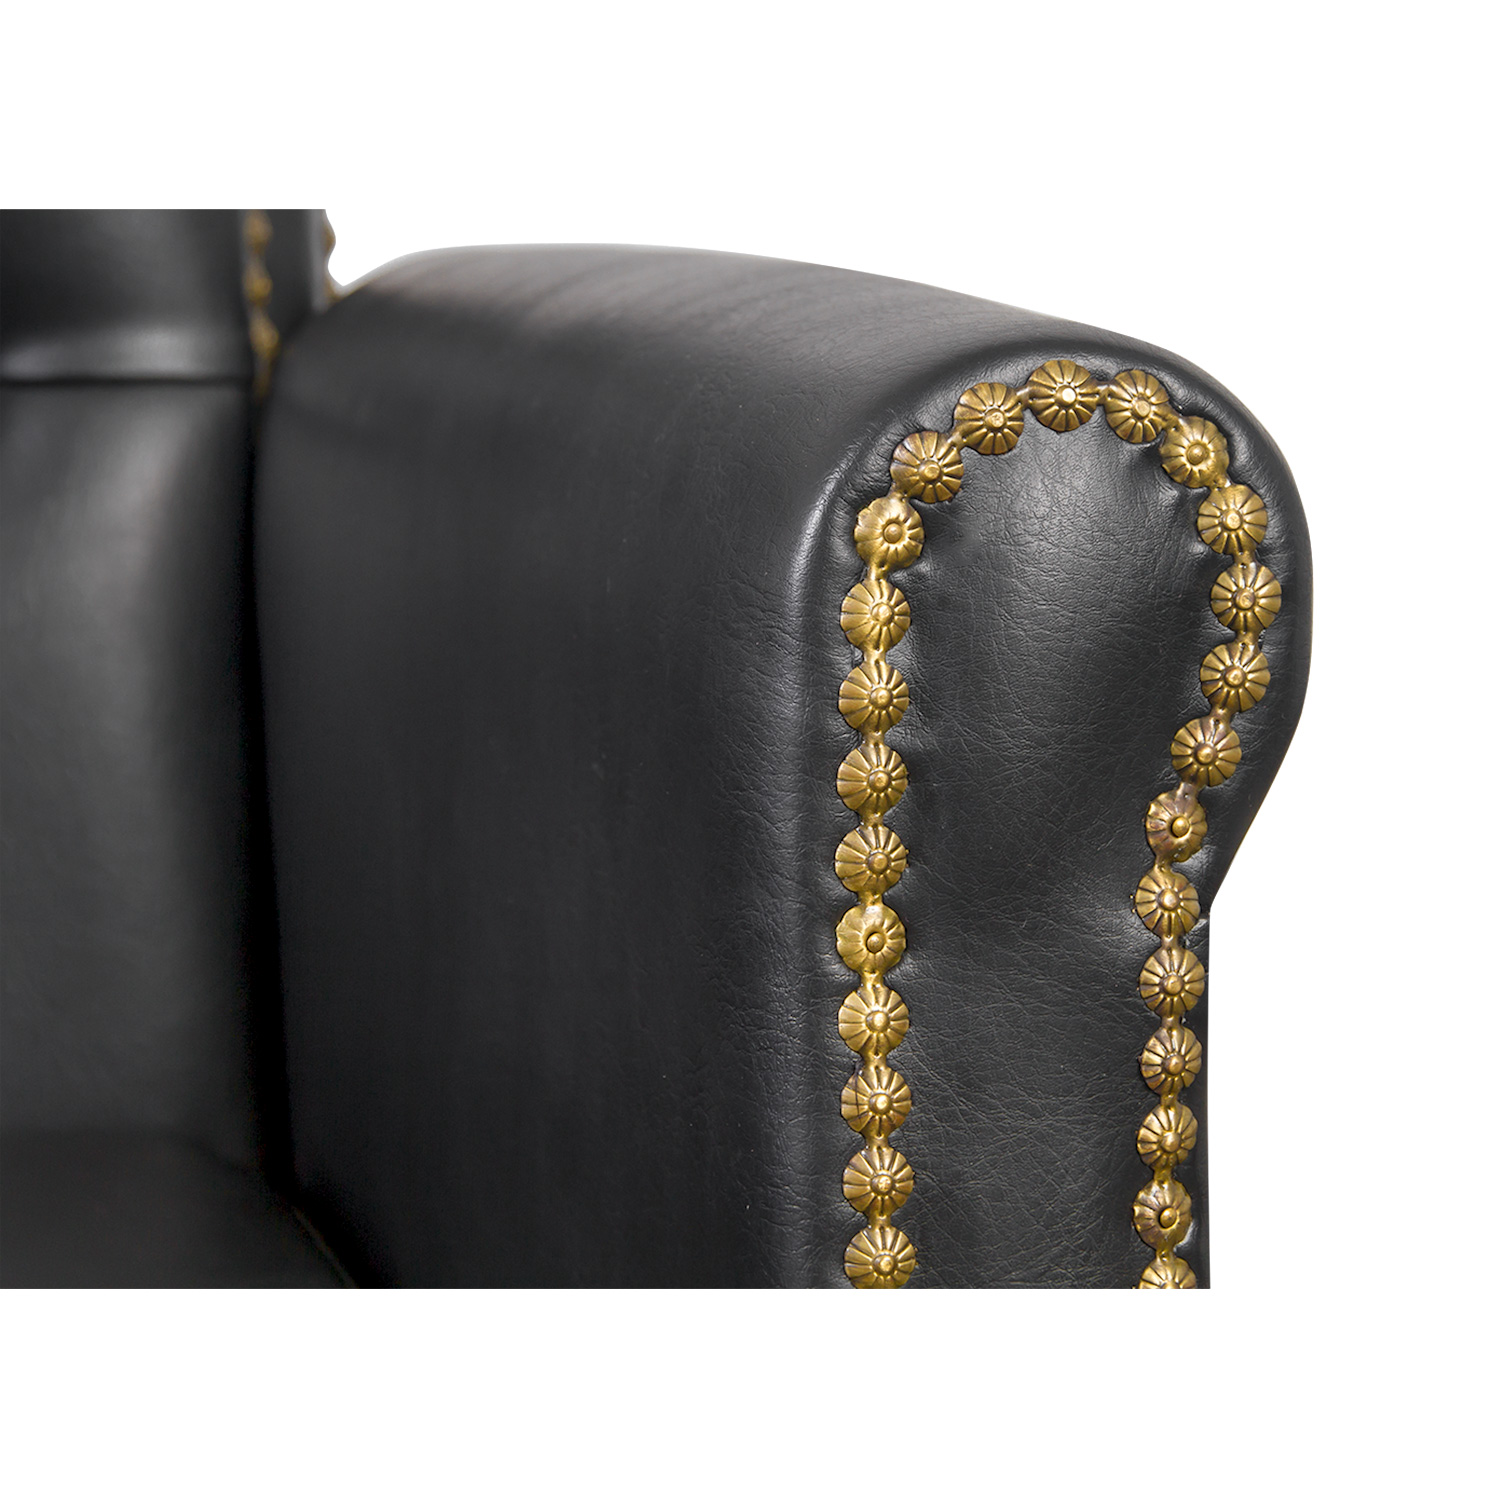 Winston Hair Chair with Nailhead Trim and Tufting alternative product image 6